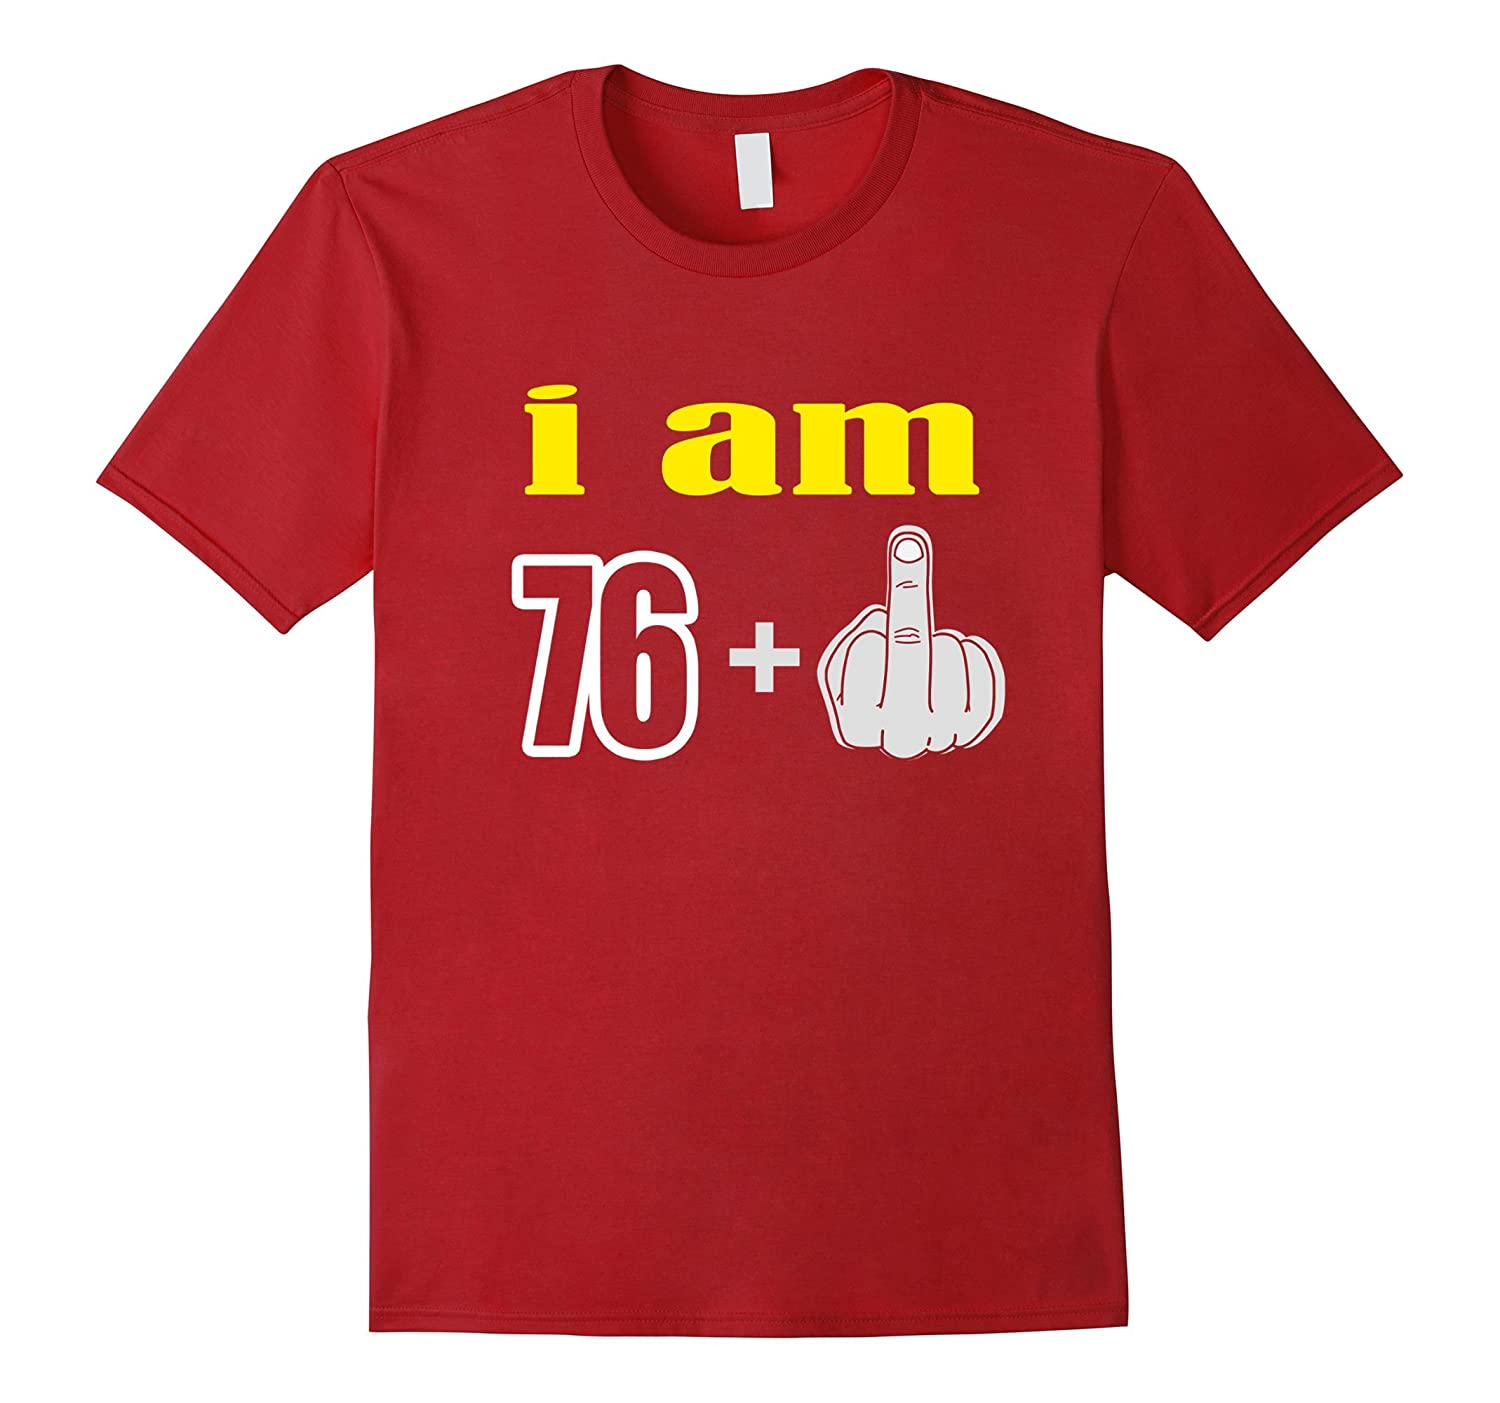 77th Birthday Vintage Made in 1940 Gift ideas Man T shirt